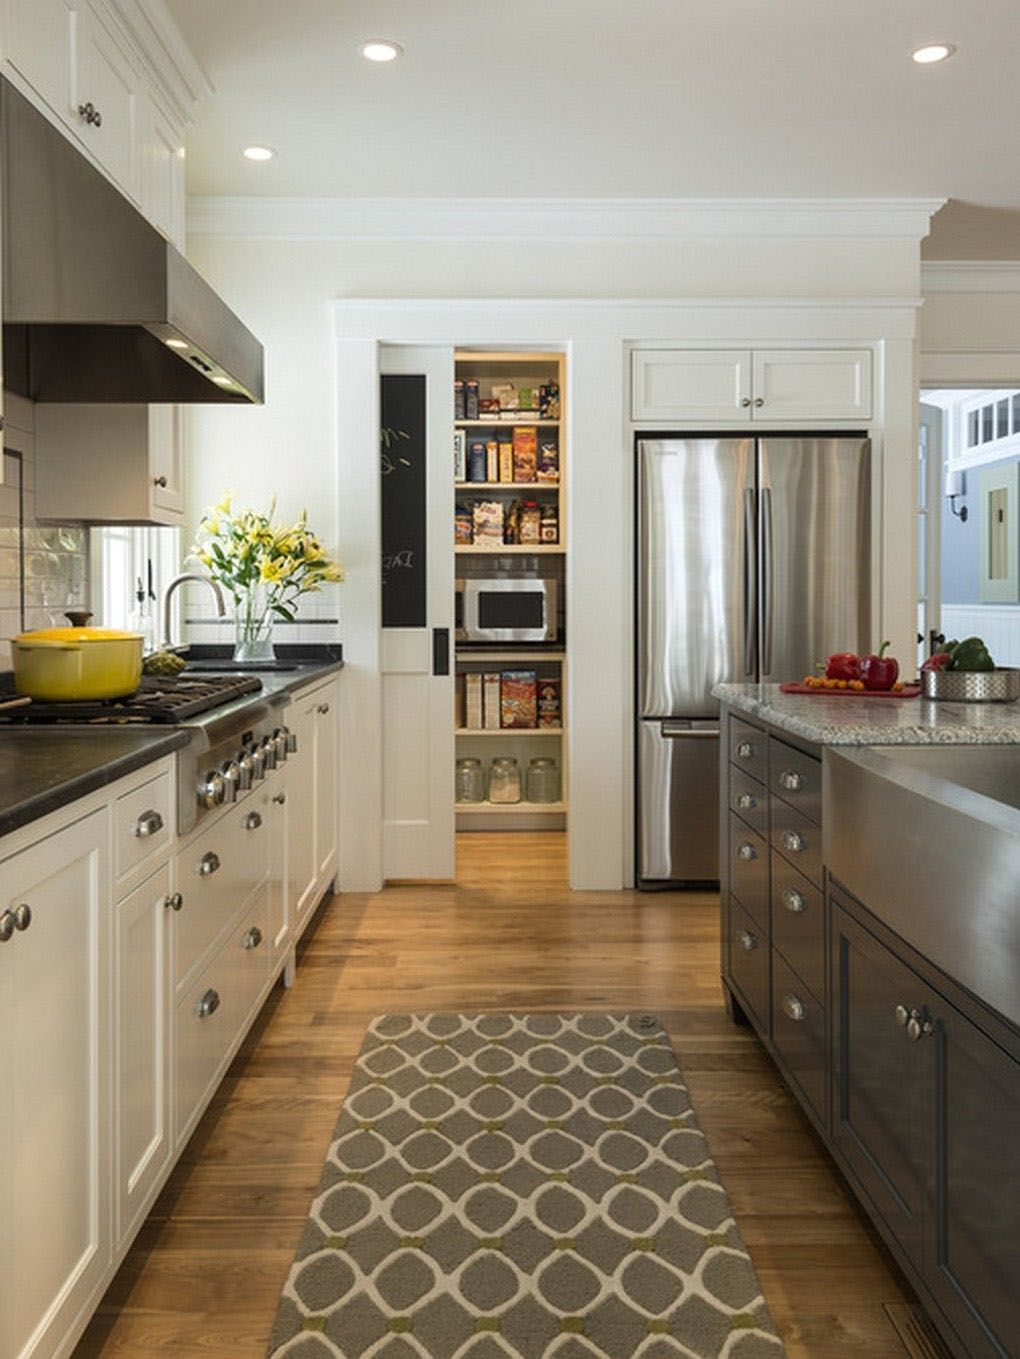 10 tips for planning a galley kitchen galley kitchen design galley kitchen remodel kitchen on kitchen remodel galley style id=36638